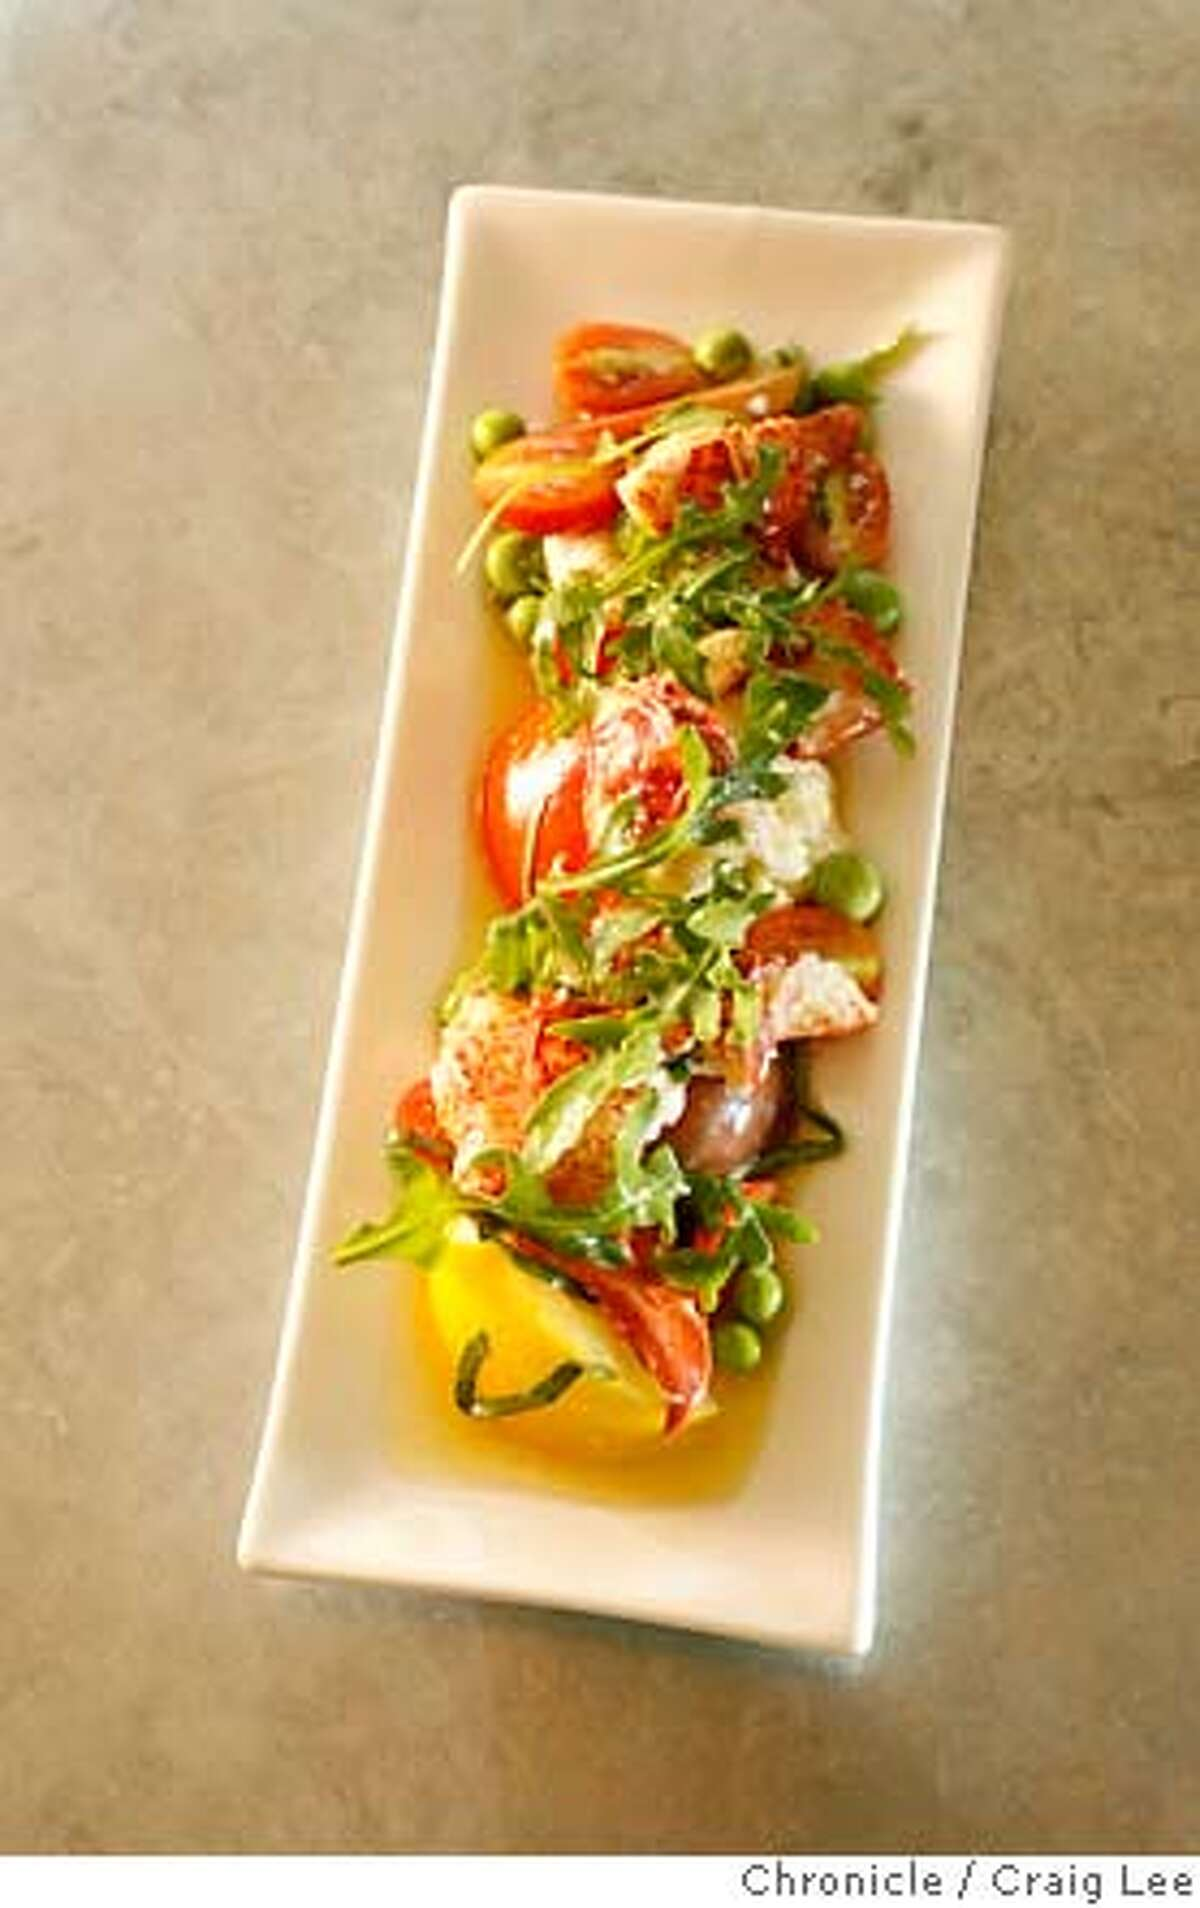 SALAD13_050_cl.JPG Photo of Maine Lobster Salad at Bar Crudo restaurant, 603 Bush Street in San Francisco. Maine Lobster Salad with English Peas, Heirloom Tomatoes, Burrata Cheese, Banyuis Vinaigrette and Wild Arugula. Event on 6/4/07 in San Francisco. photo by Craig Lee / The Chronicle MANDATORY CREDIT FOR PHOTOG AND SF CHRONICLE/NO SALES-MAGS OUT